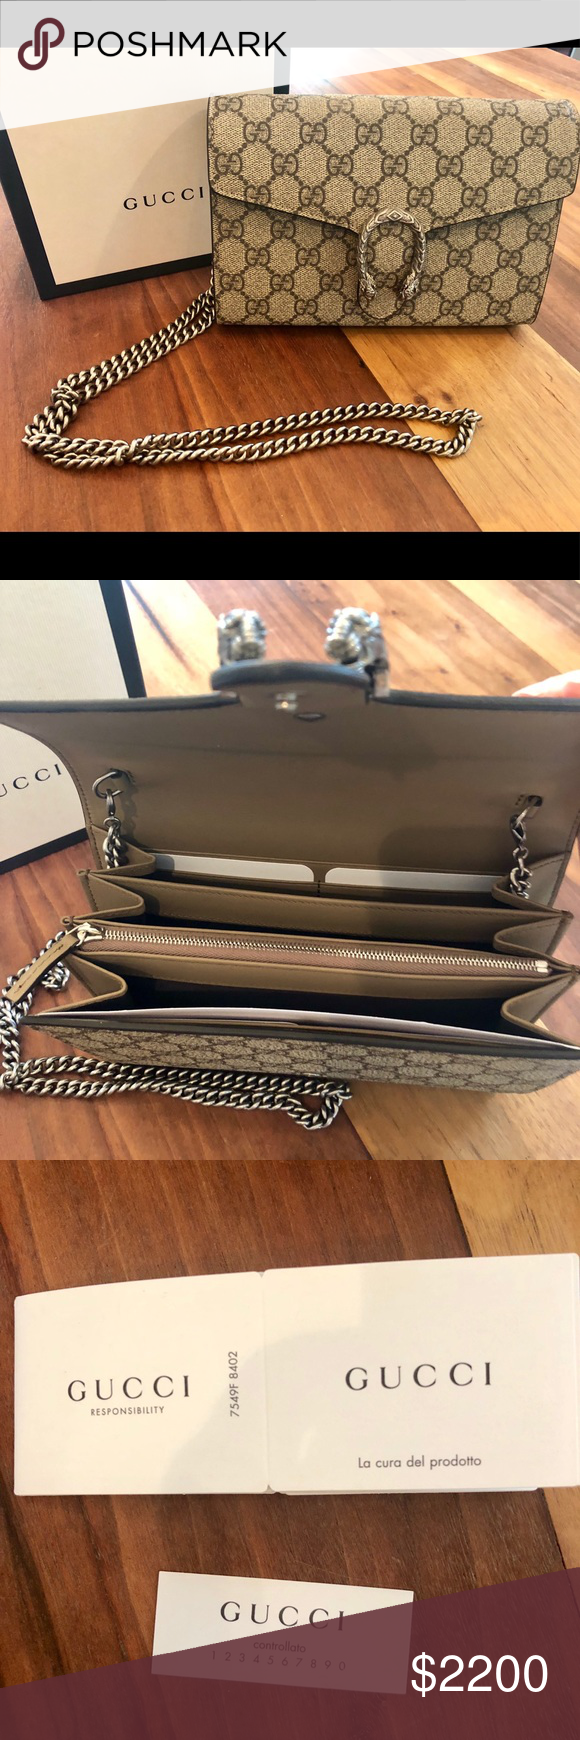 6d13f2a428d Gucci Dionysus Small GG Shoulder Bag Adorable structured clutch. New in  box